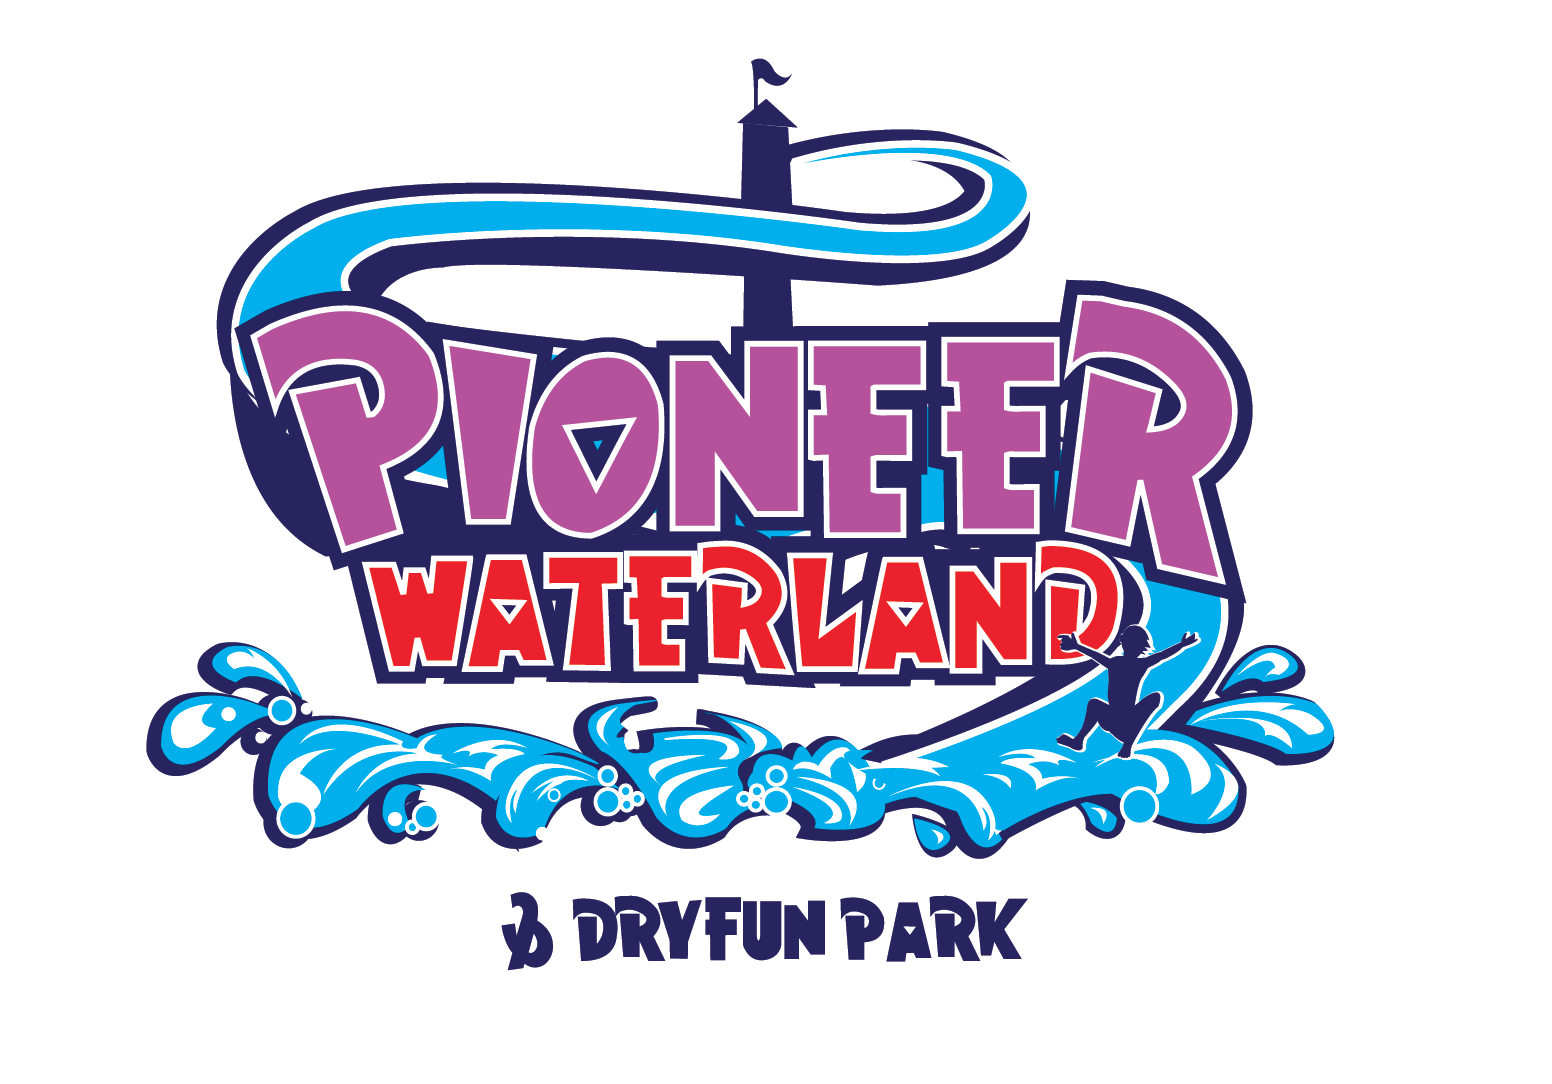 Pioneer Waterland and Dry Fun Park logo